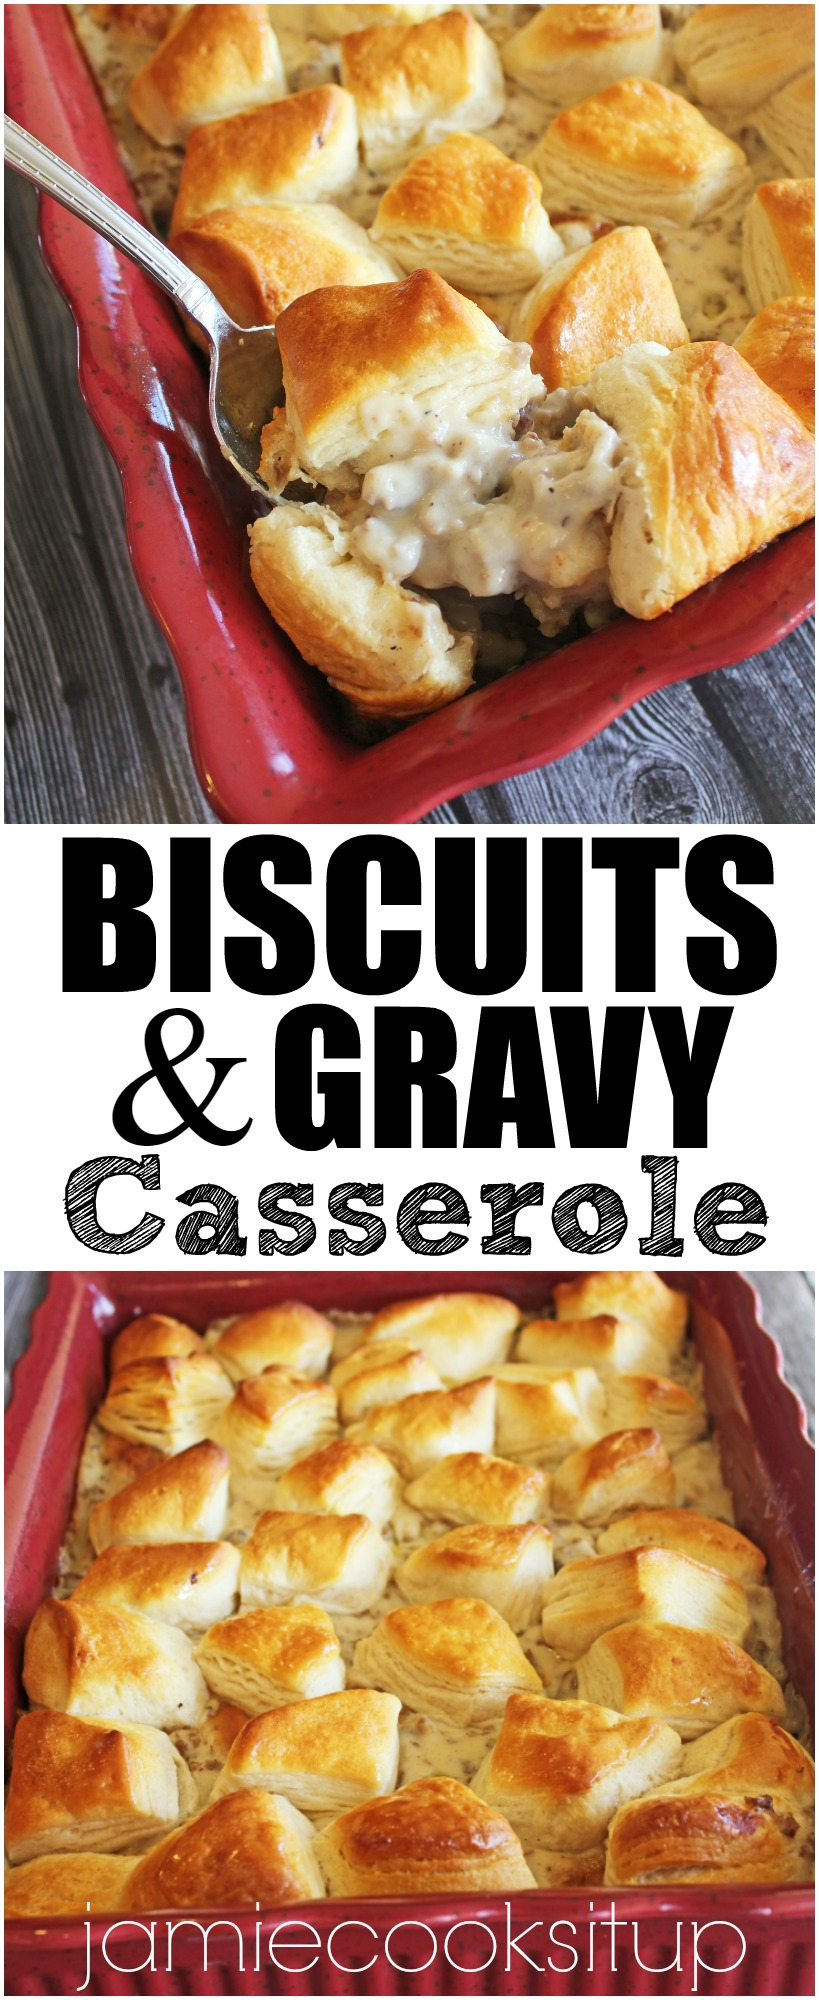 biscuits-and-gravy-casserole-from-jamie-cooks-it-up